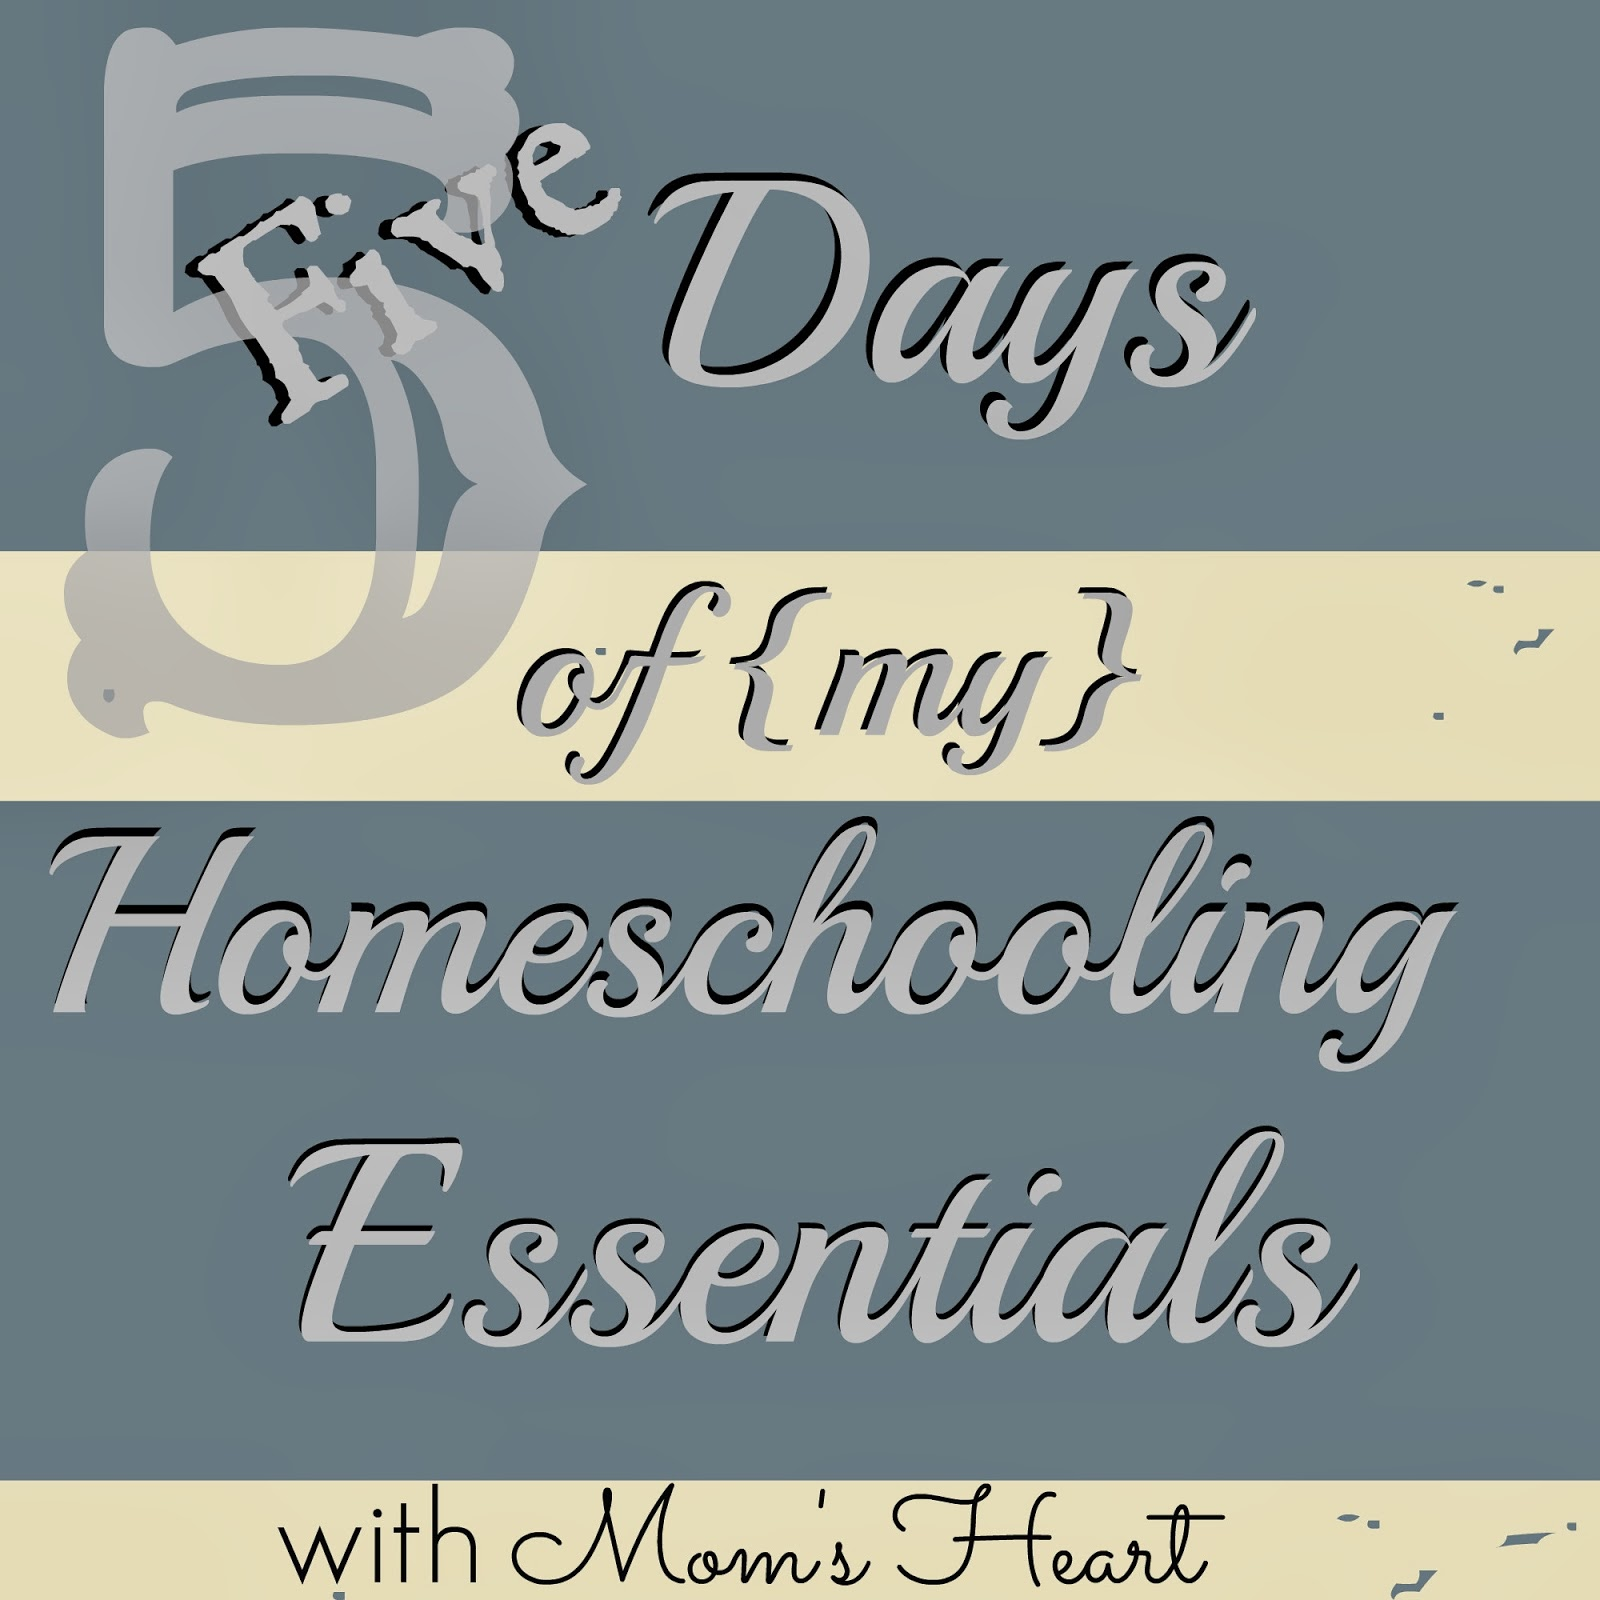 5 Days of {my} Homeschooling Essentials